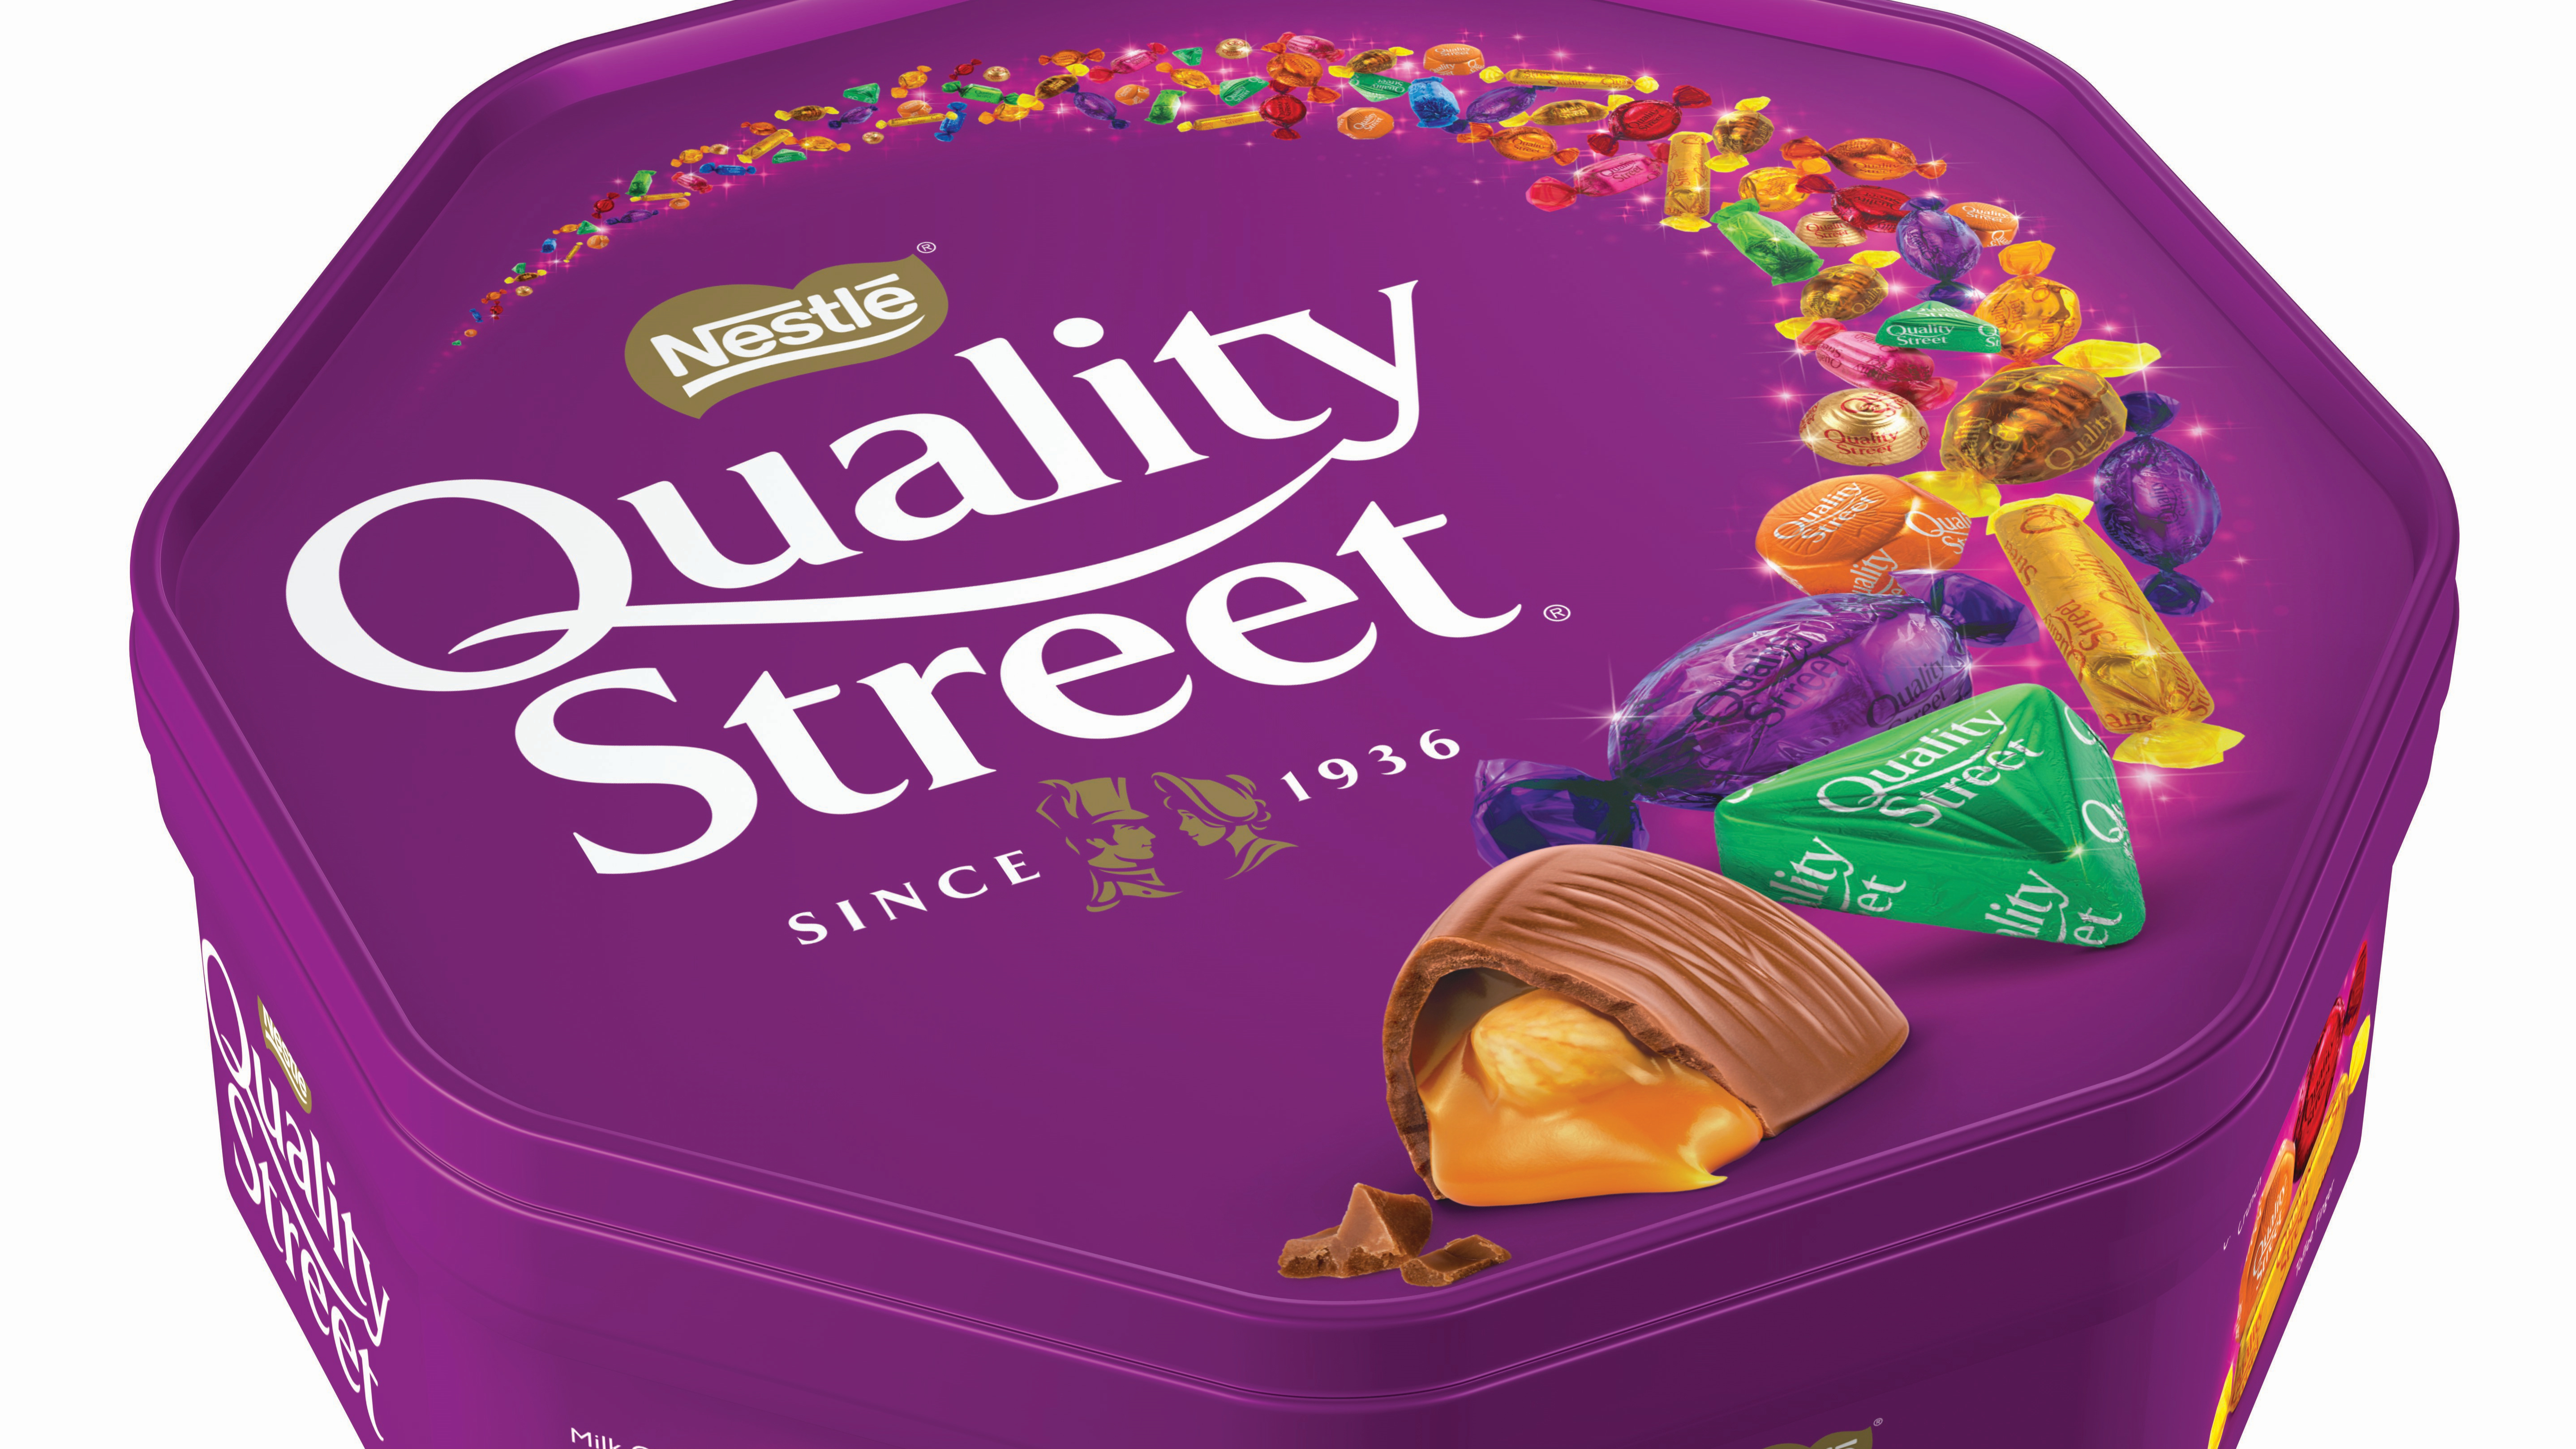 Boxes of Quality Street have been reduced by 30g. Credit: Nestle